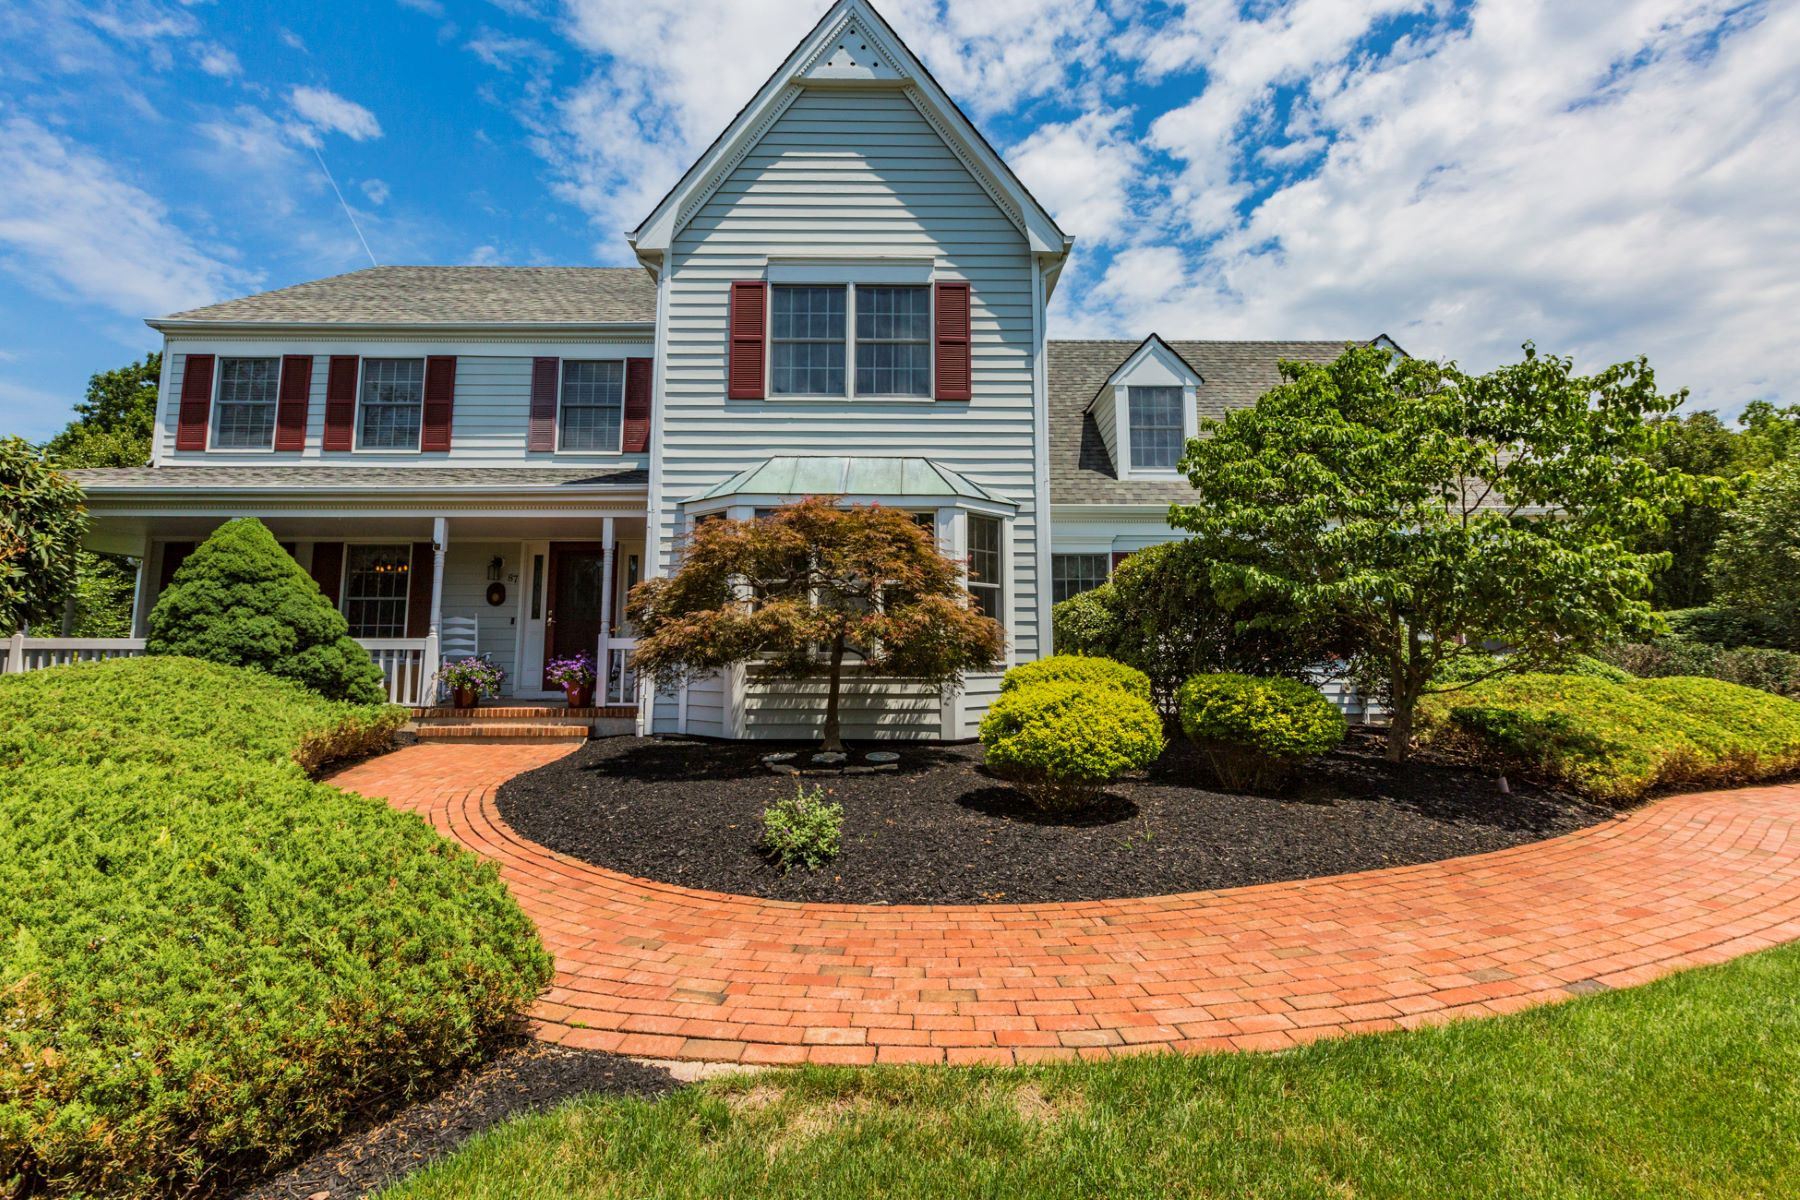 Single Family Home for Sale at Home With A Heart - Montgomery Township 87 Wilshire Drive Belle Mead, New Jersey, 08502 United States